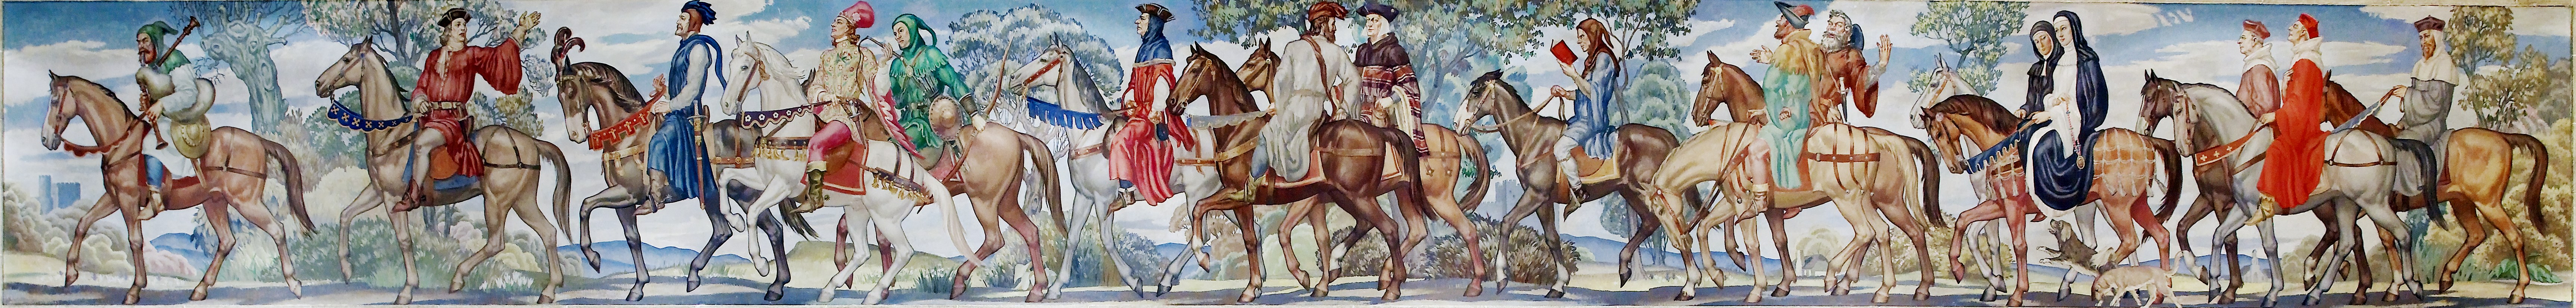 clerk squire contrast the canterbury tales writework ezra winter canterbury tales mural 1939 library of congress john adams building